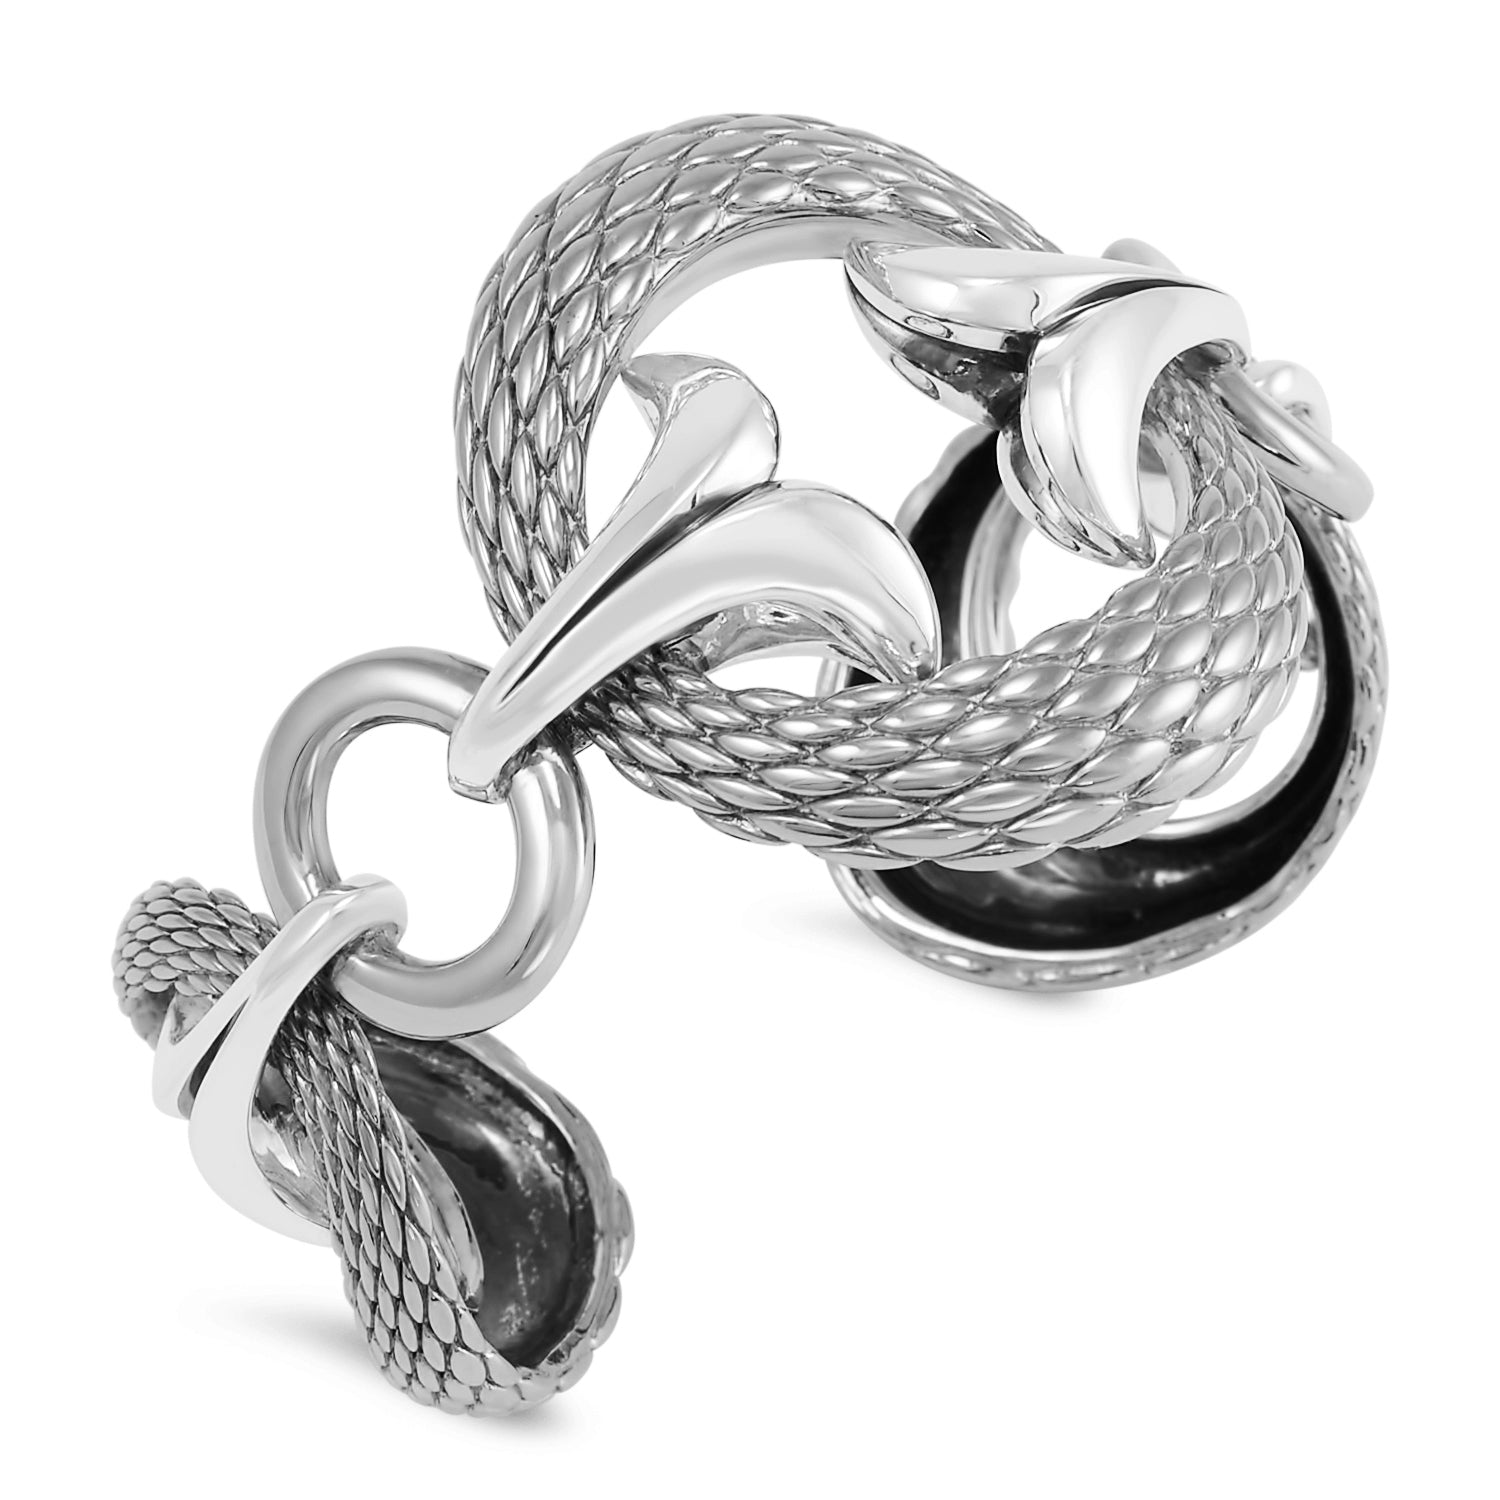 Tryst Rendezvous Cuff Bracelet